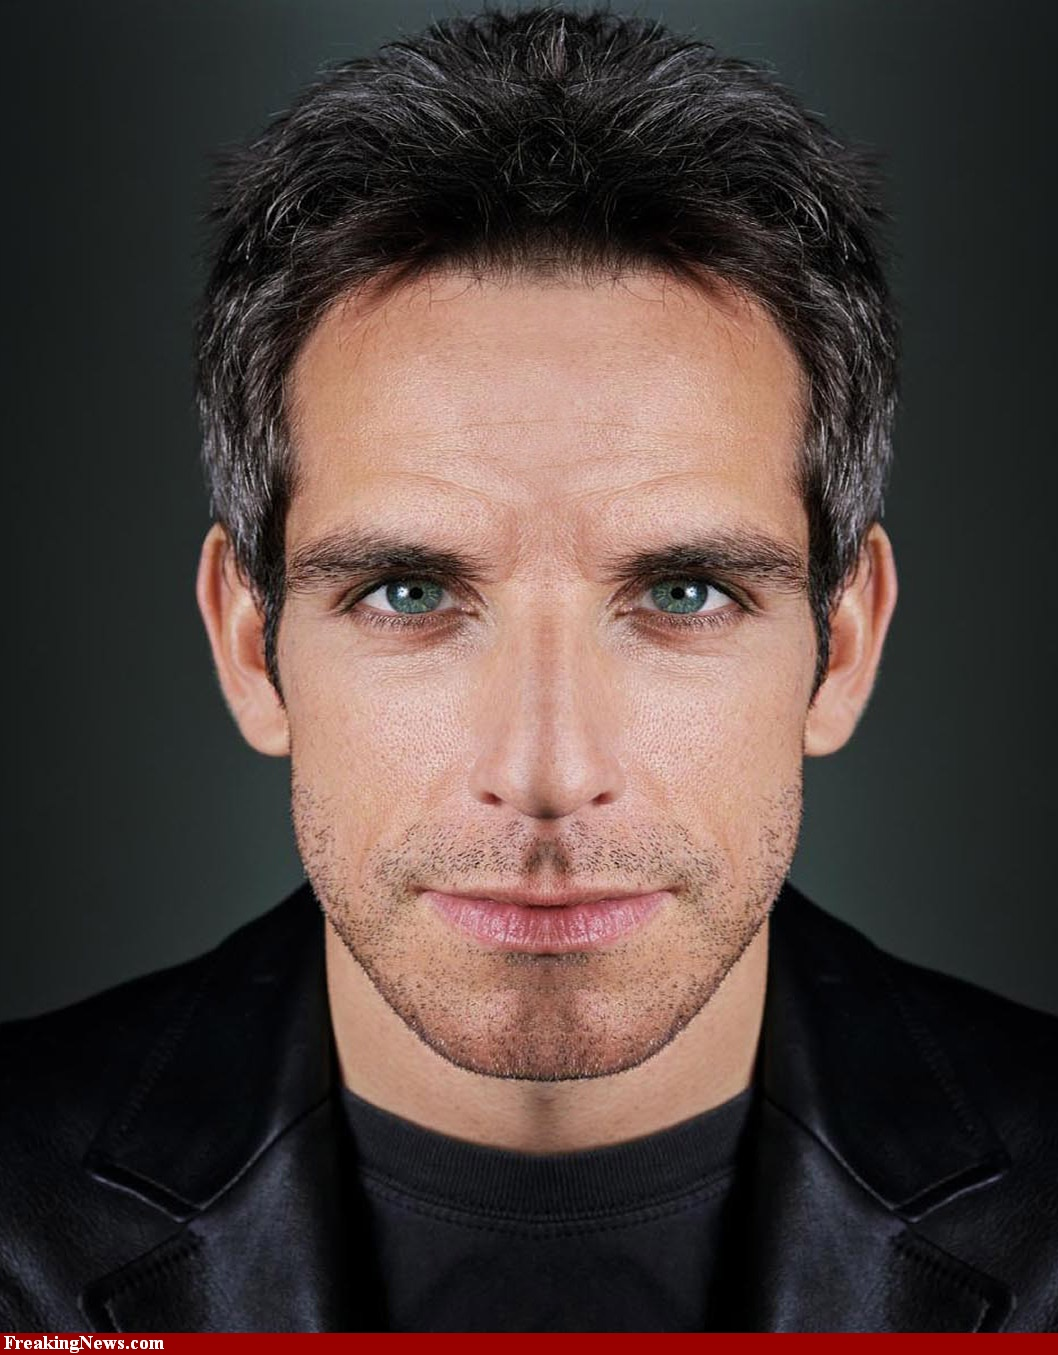 Ben-Stiller-with-Symmetrical-Face-58616